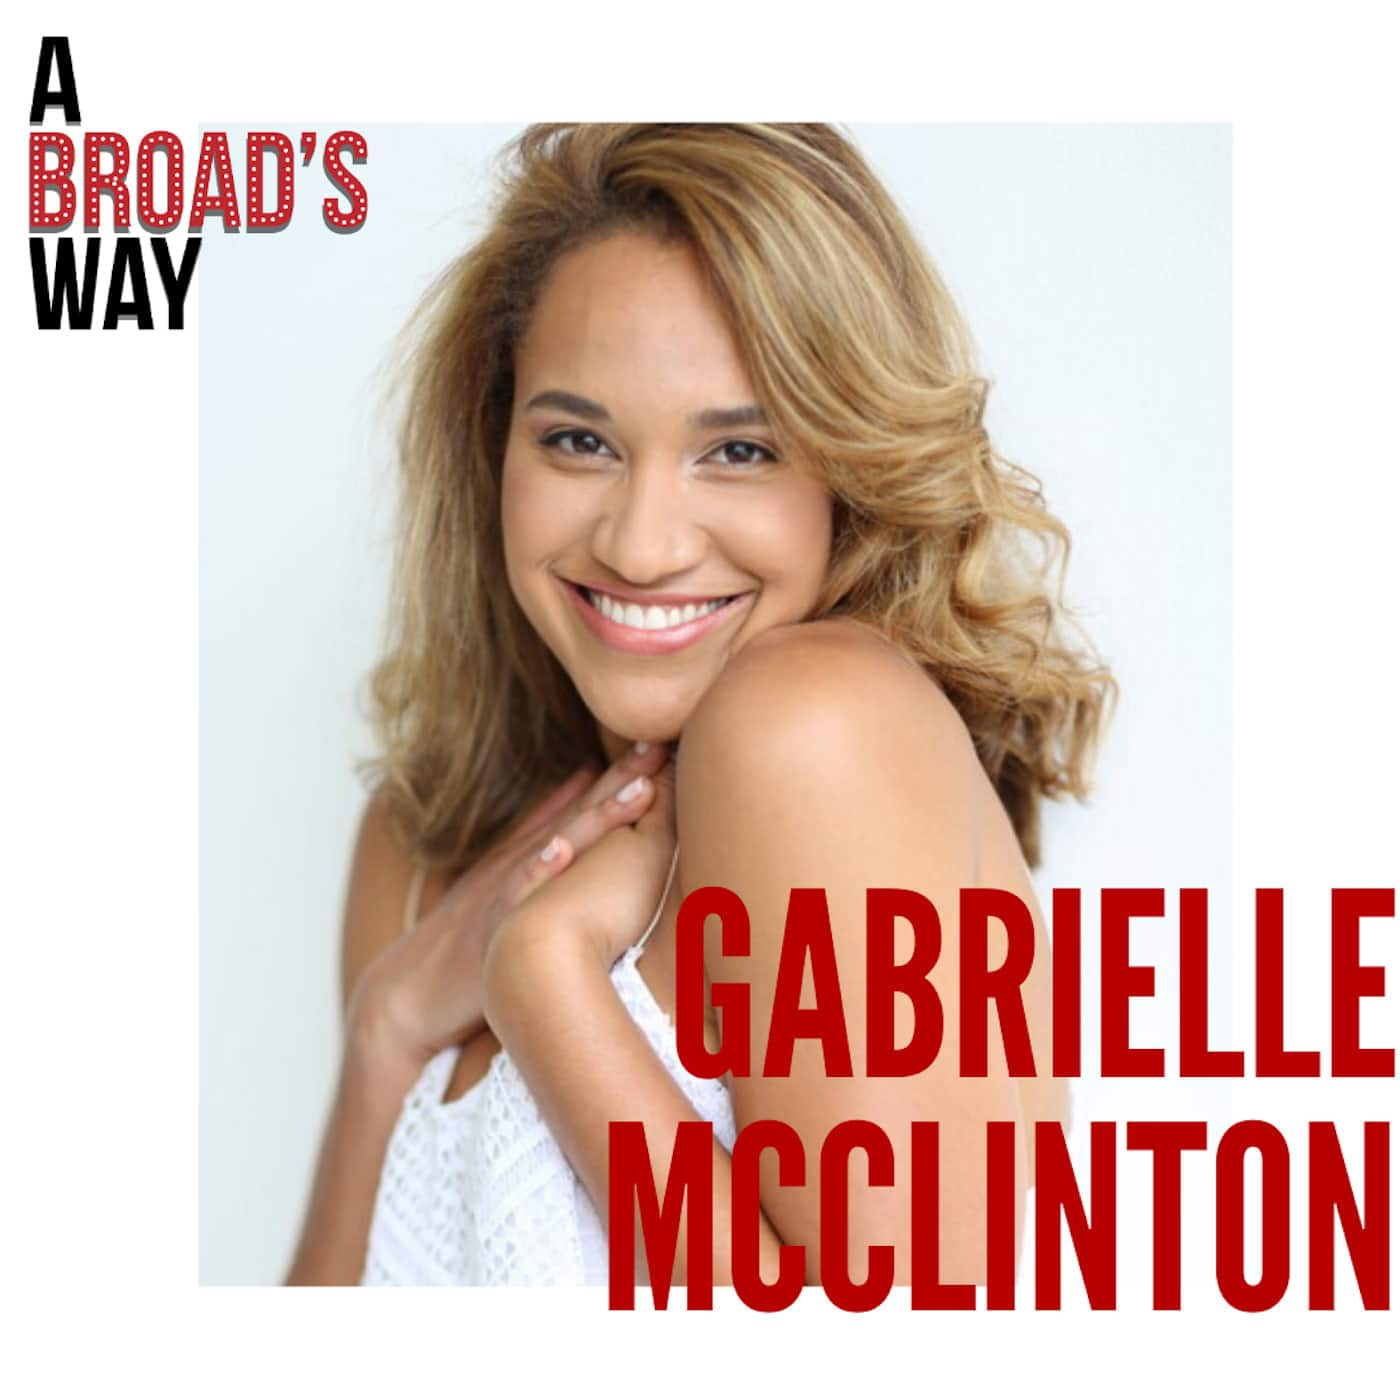 A Broad's Way Episode 10 Gabrielle McClinton